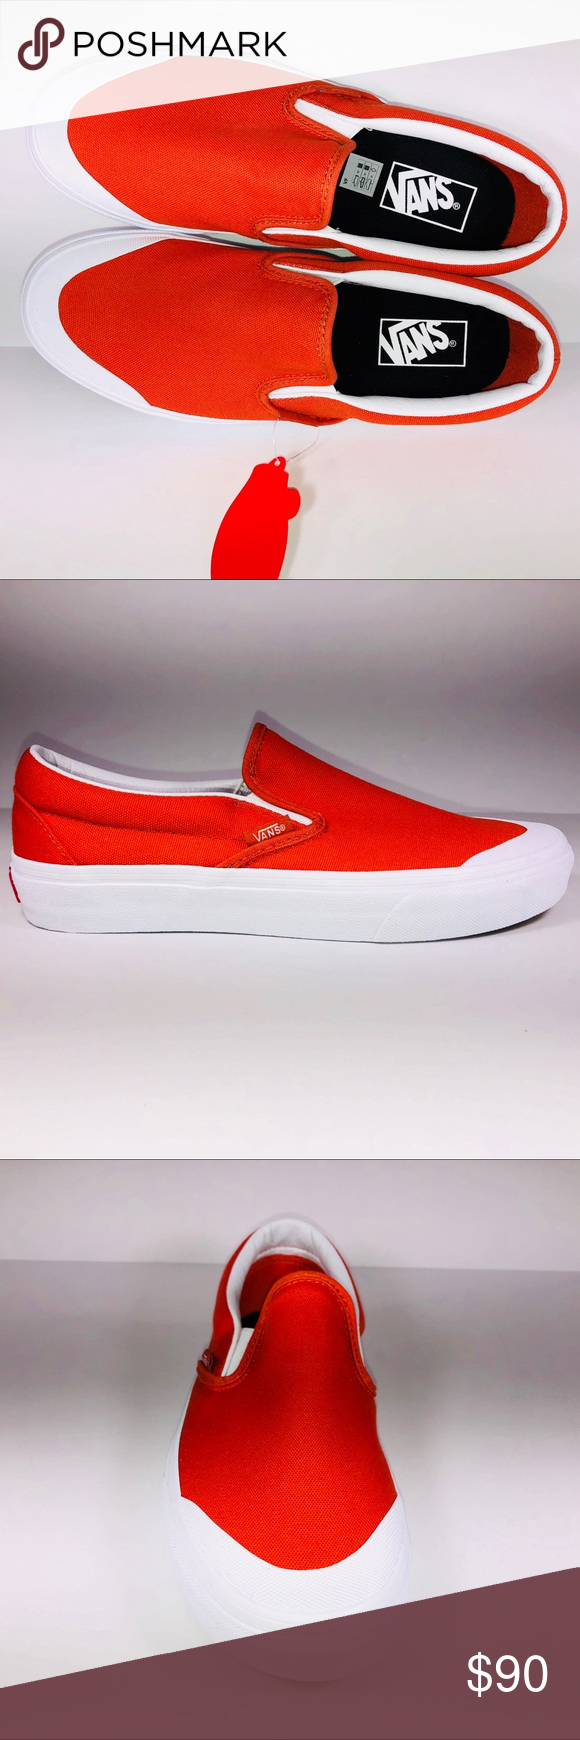 afa2fef18f1 VANS Classic Slip On 138 Puréed Pumpkin Sneakers New With Box See Pictures  For Details.